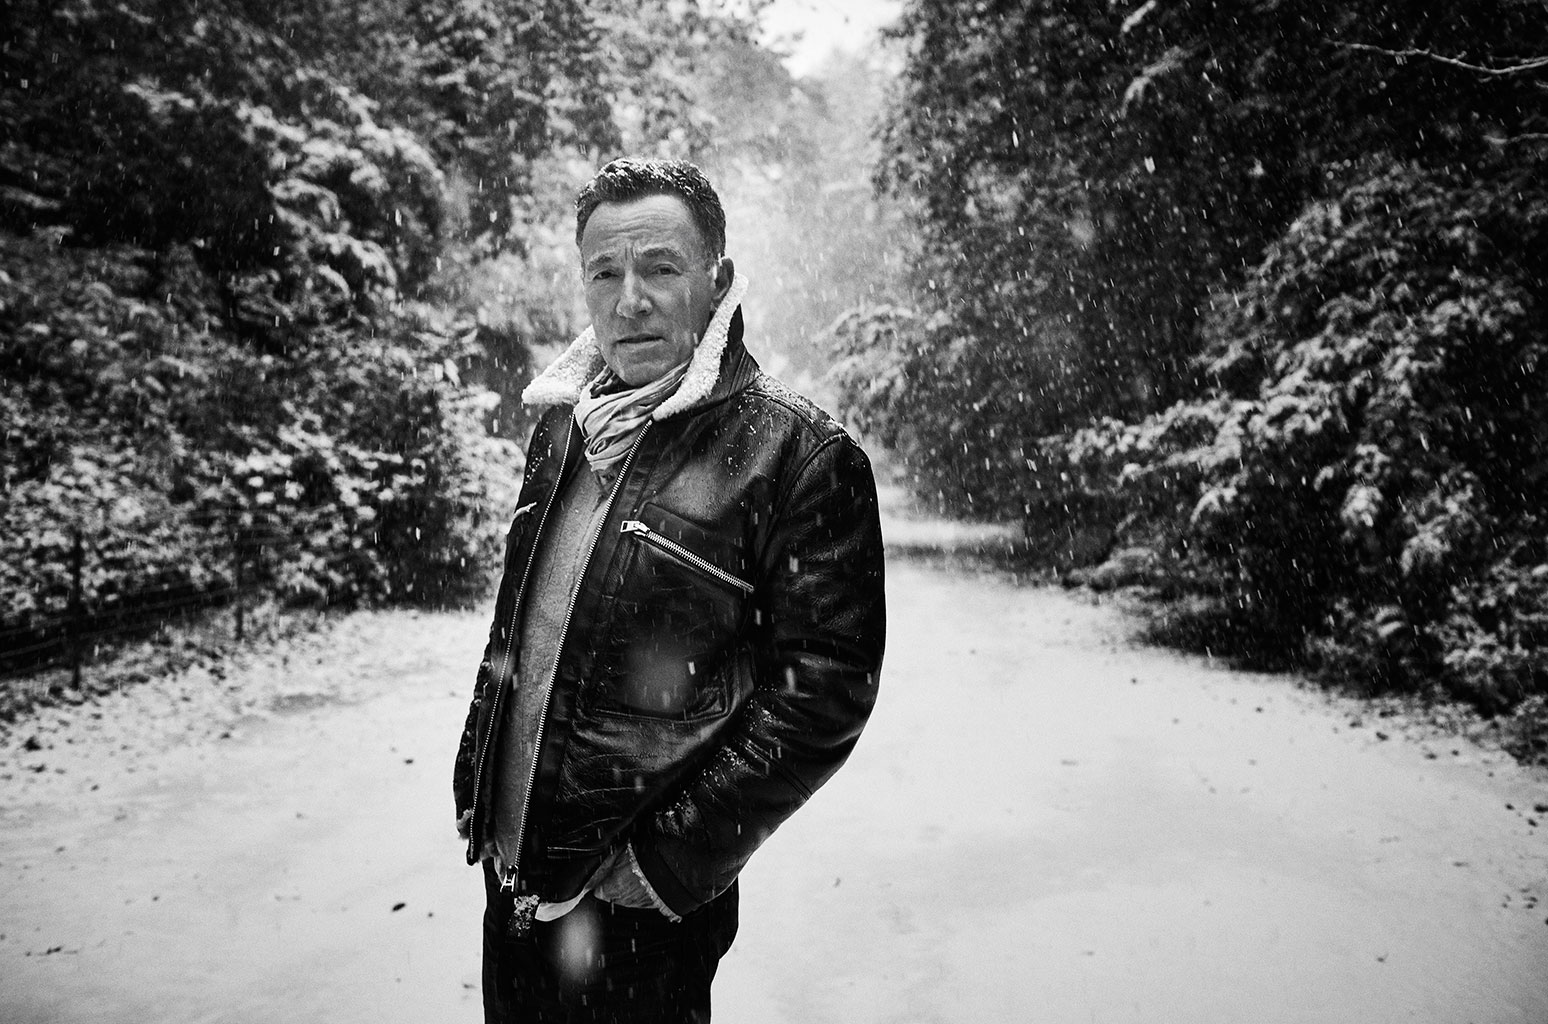 Bruce Springsteen Announces New Album 'Letter to You' Recorded Live During Lockdown